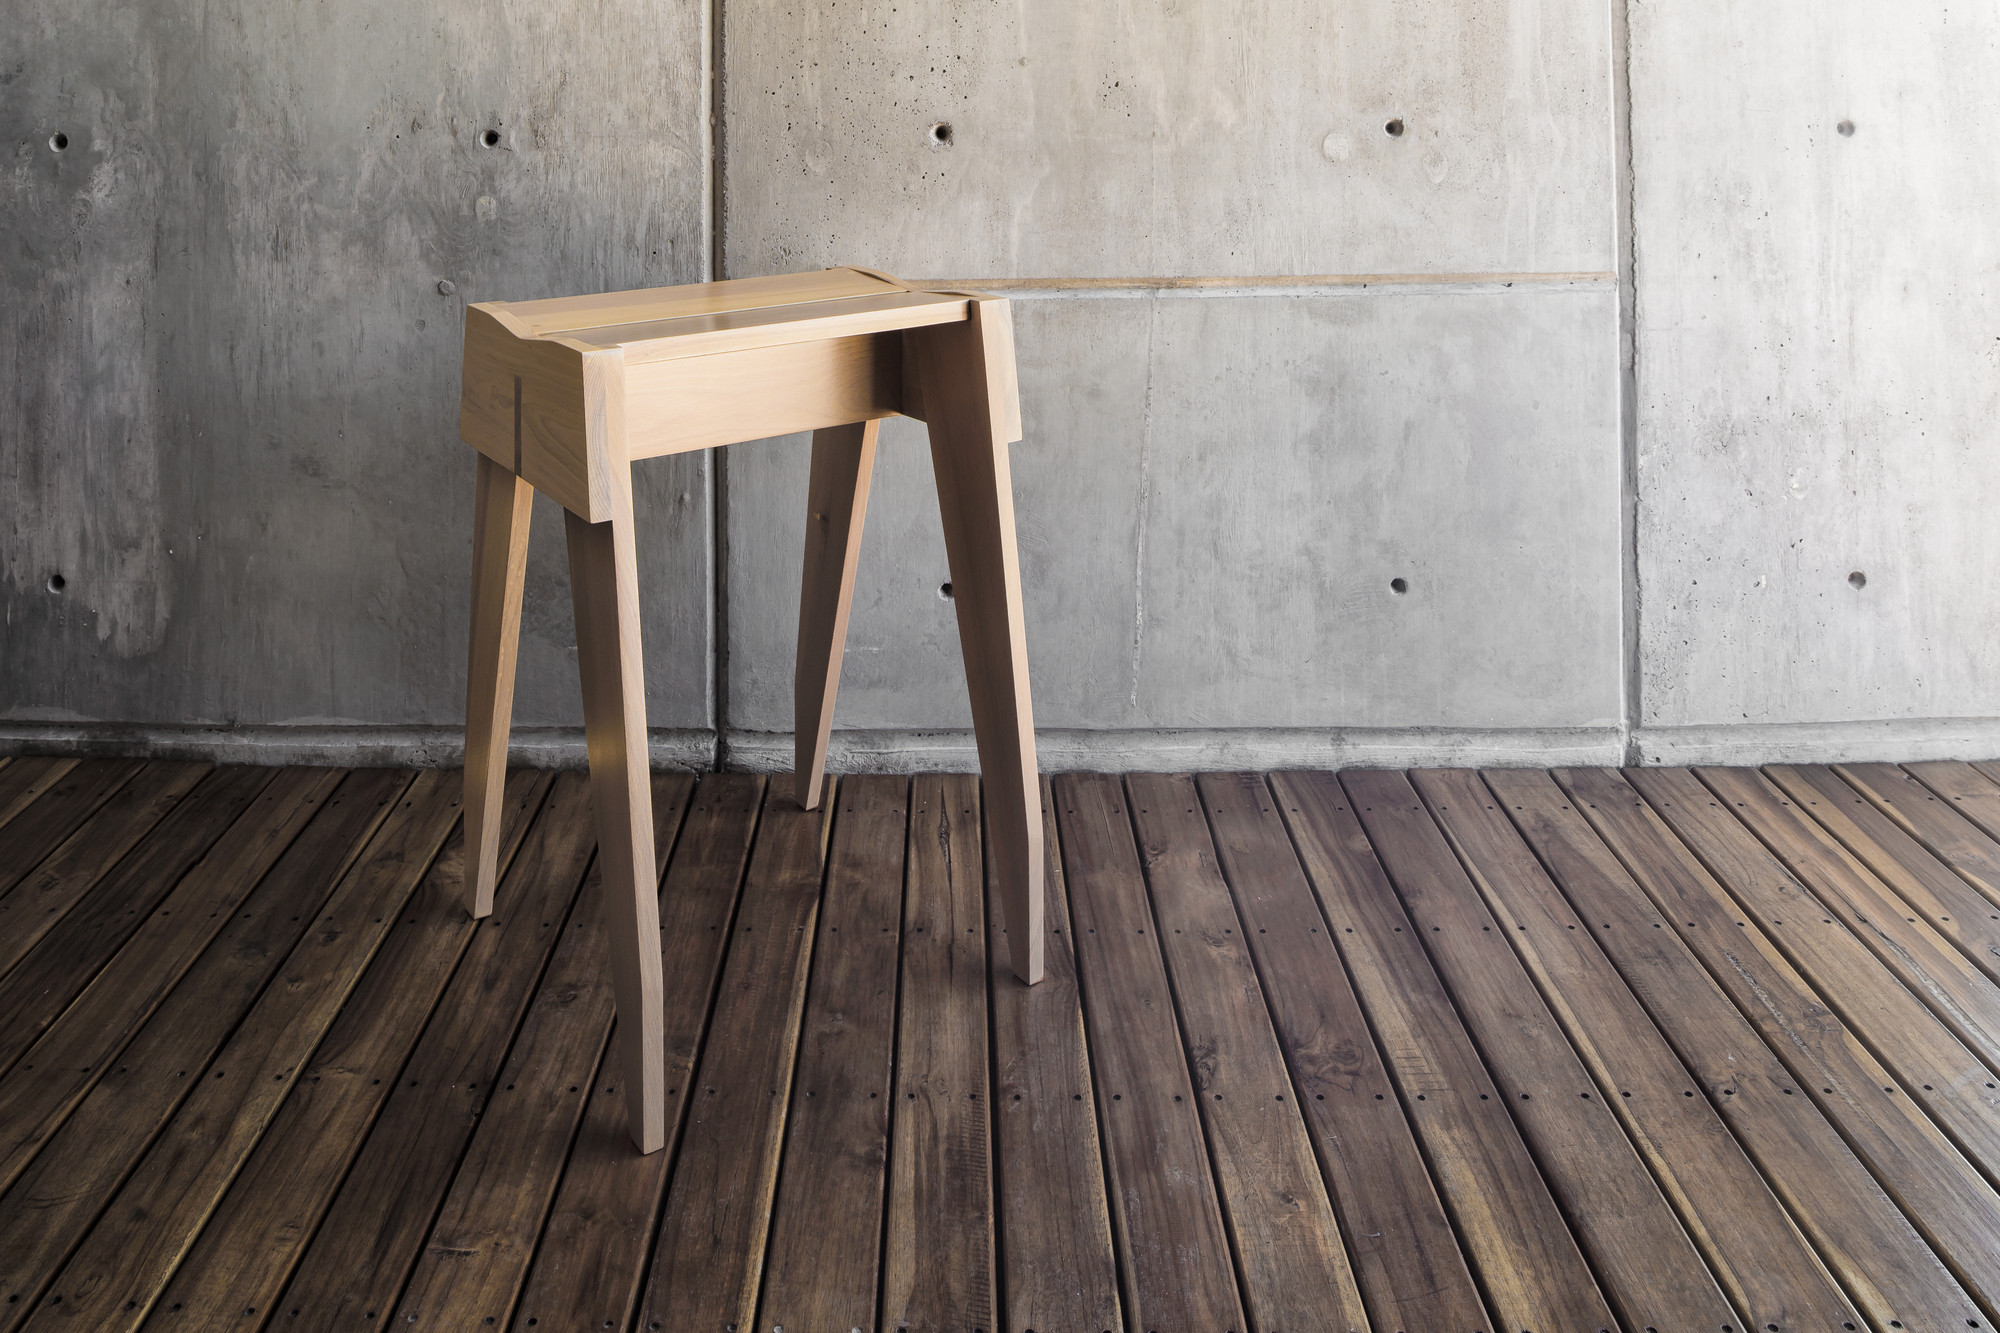 Furnitures Span Class Translation_missing Title Translation  # Muebles Miguel Angel Aracena